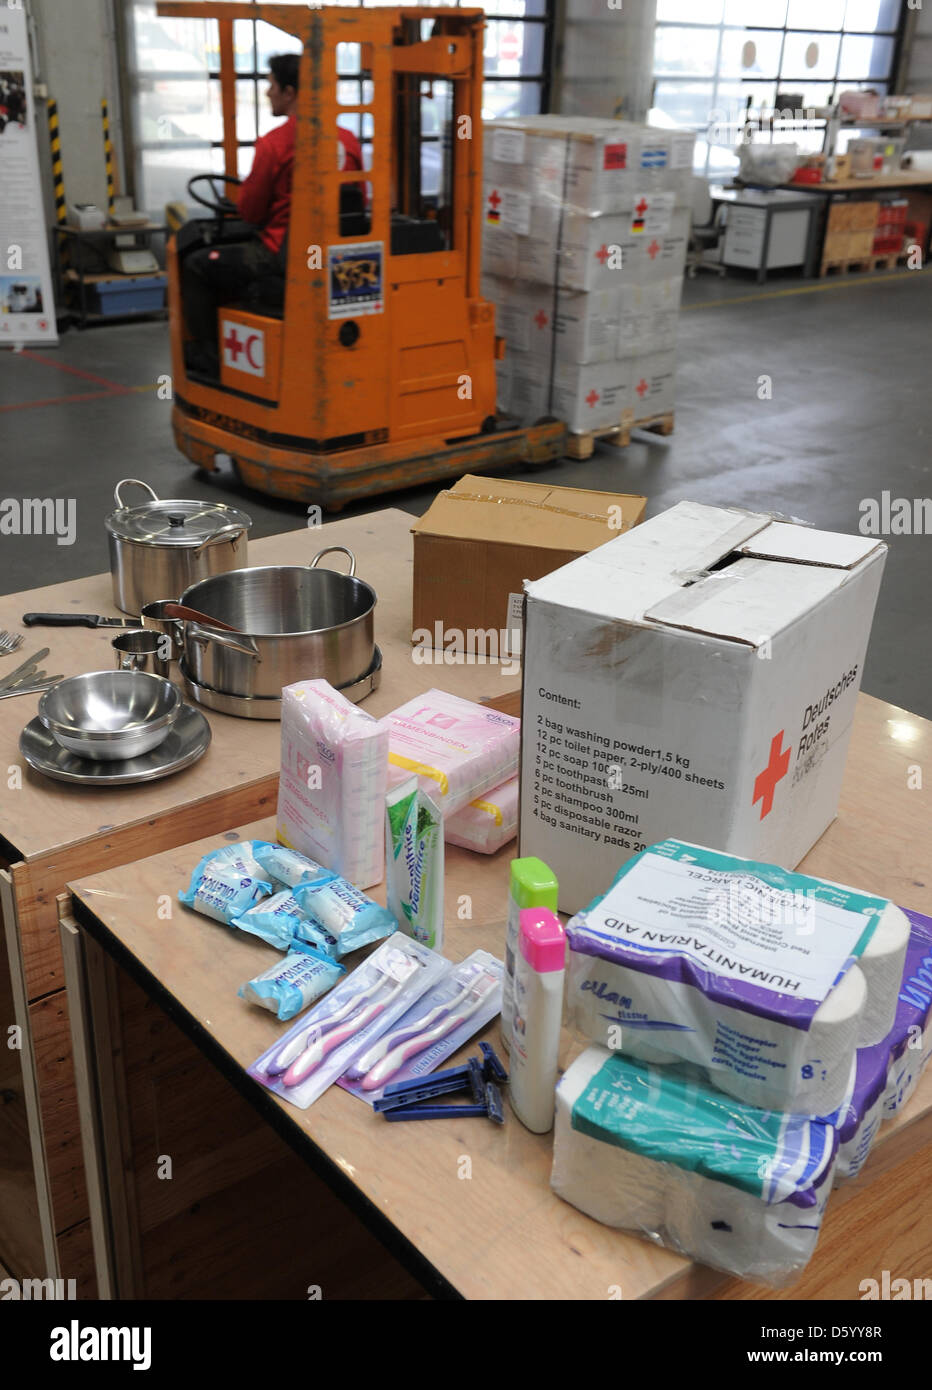 Hygiene articles, which are part of humanitarian aid parcels for Syrian refugees in Turkey, are pictured at the Stock Photo